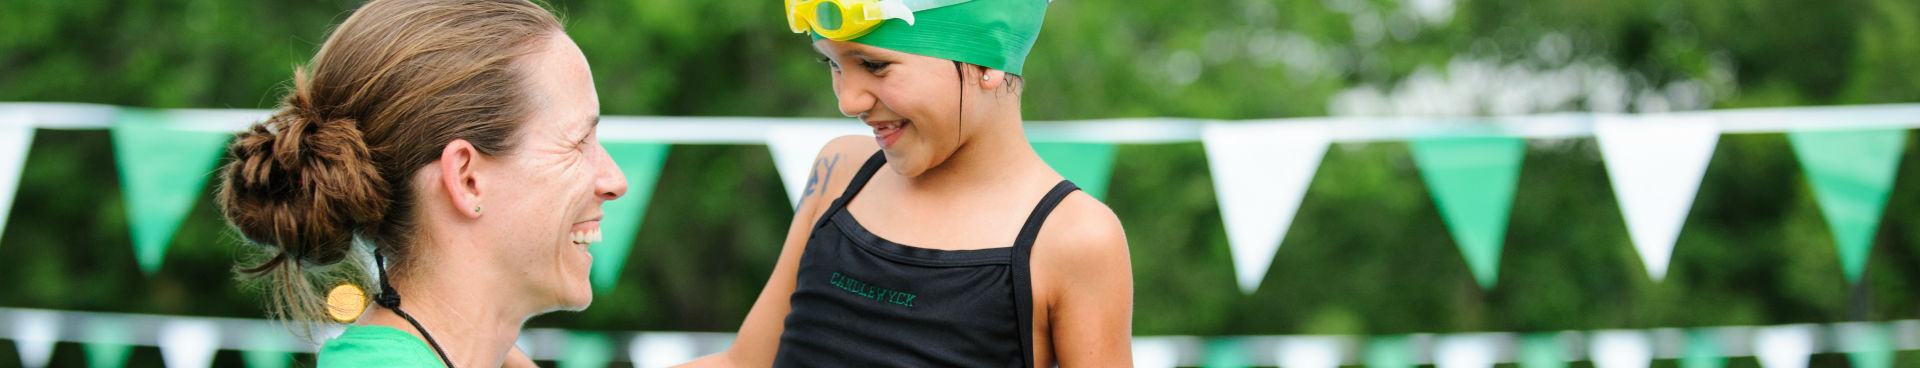 Young girl and coach at swim meet smiling